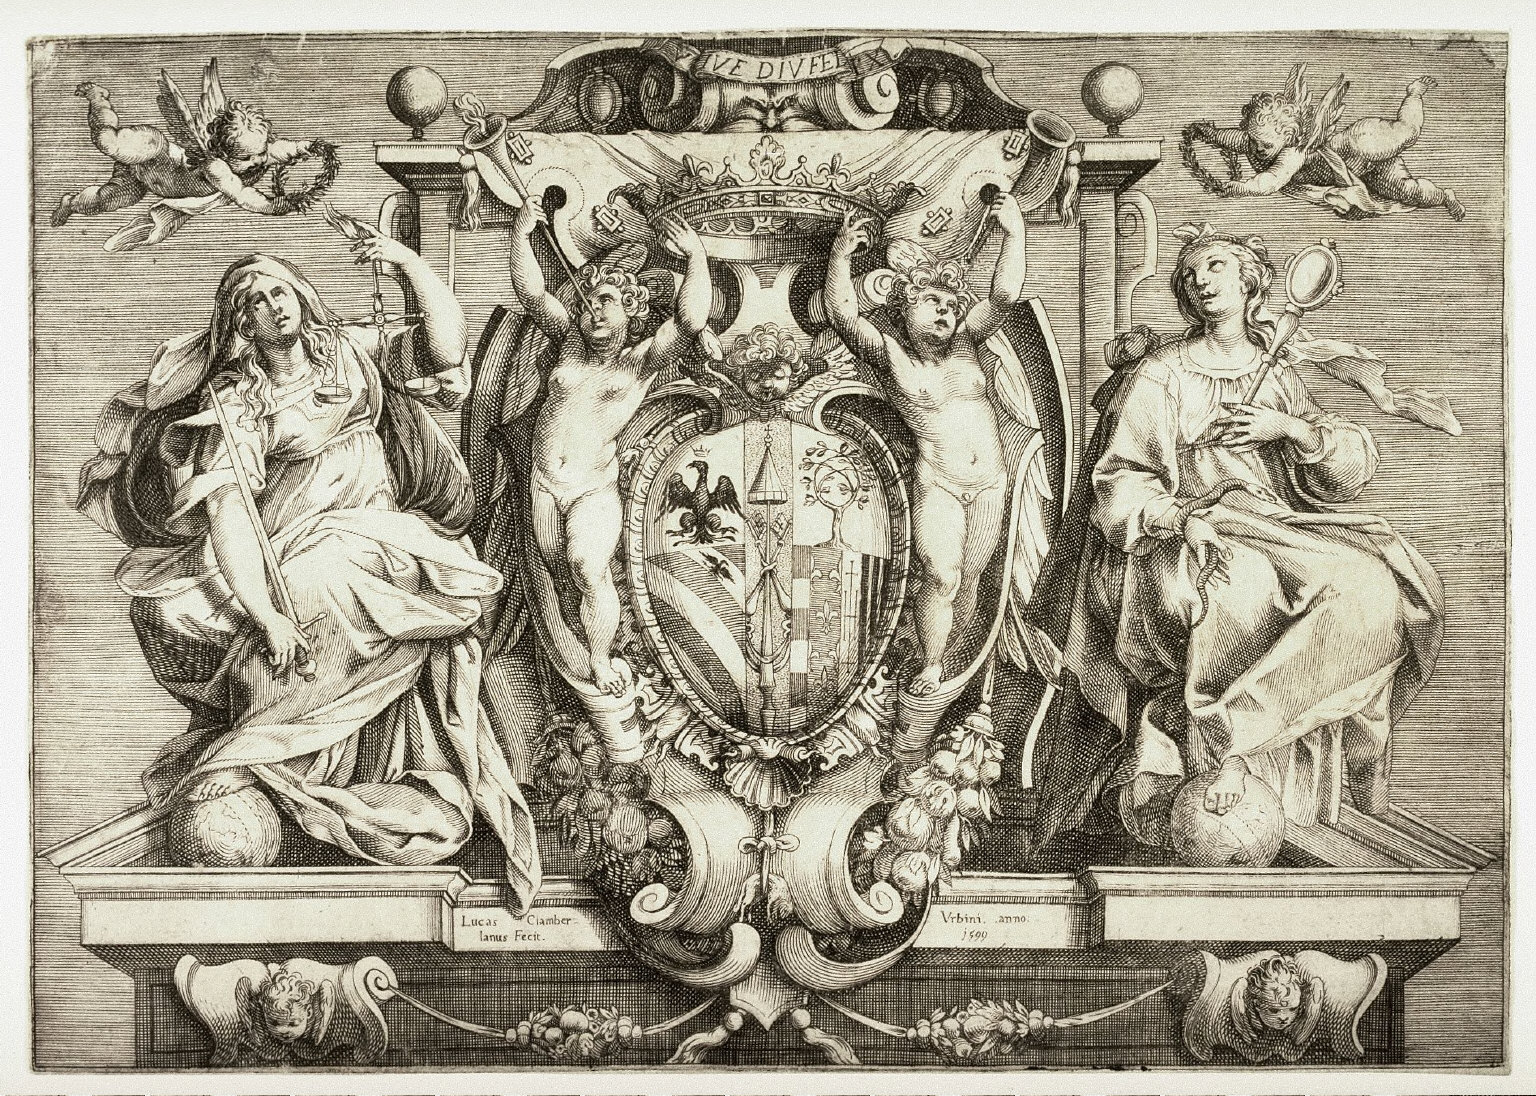 Coat-of-Arms with Virtues for the Duke of Urbino